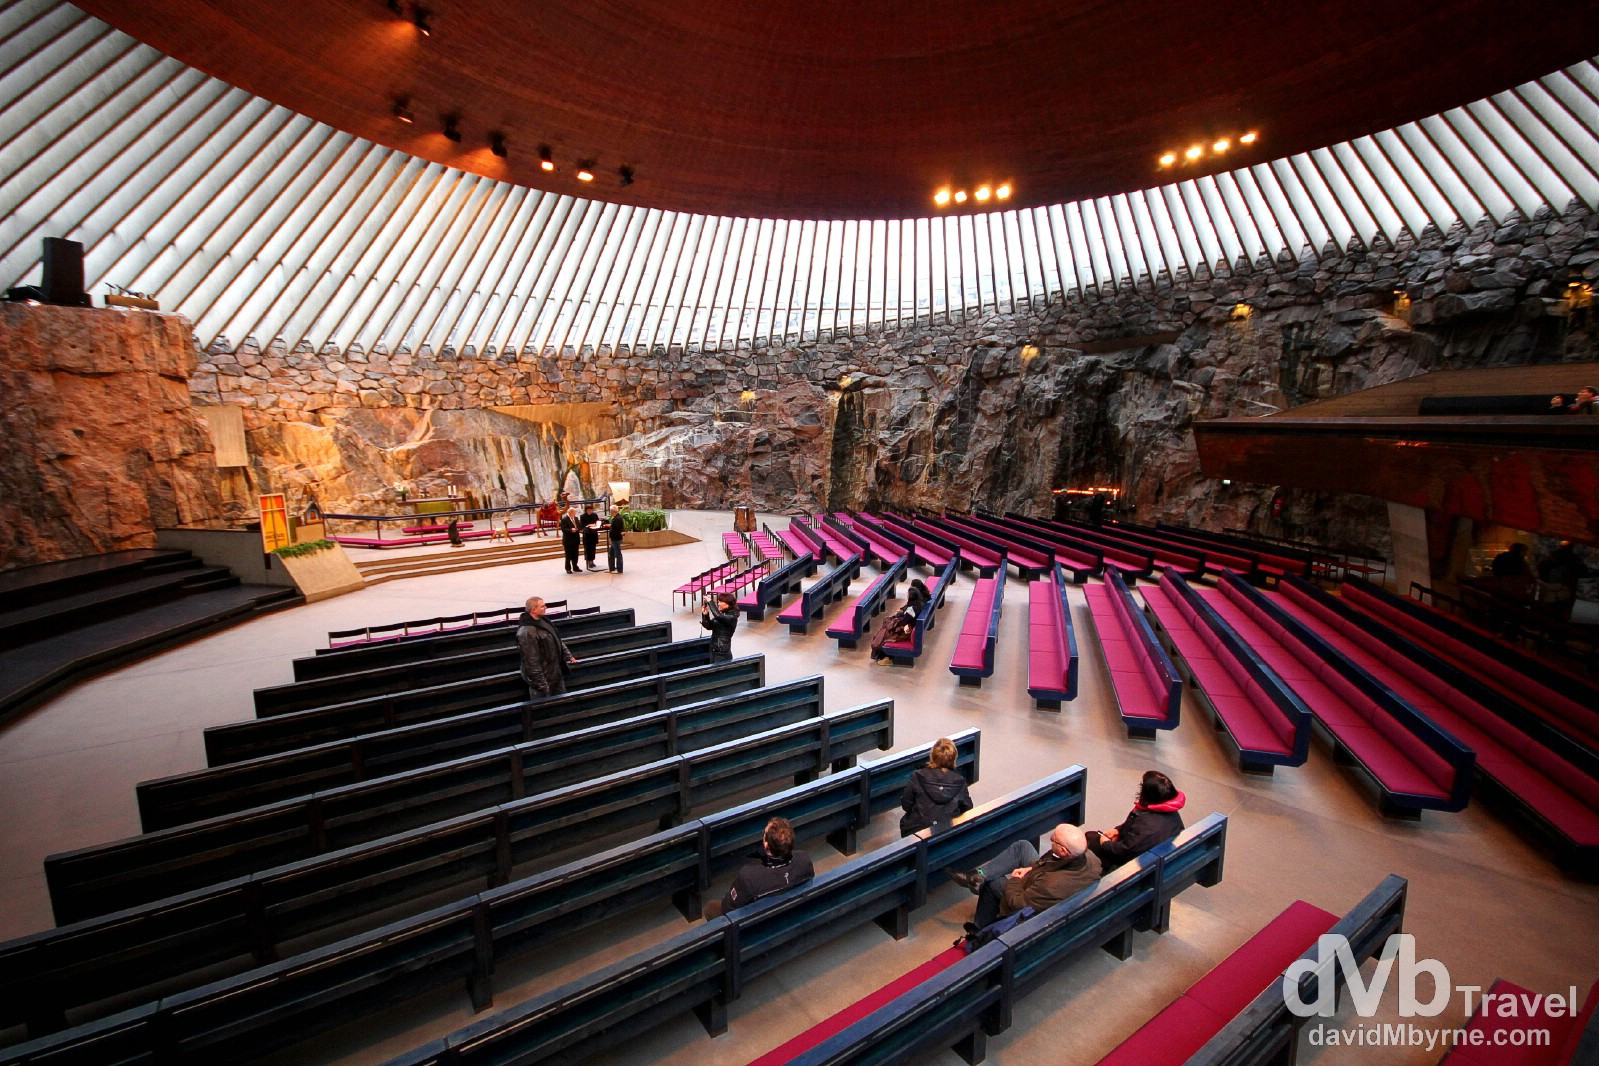 The interior of Temppeliaukio Church in Helsinki, Finland. November 24th 2012.